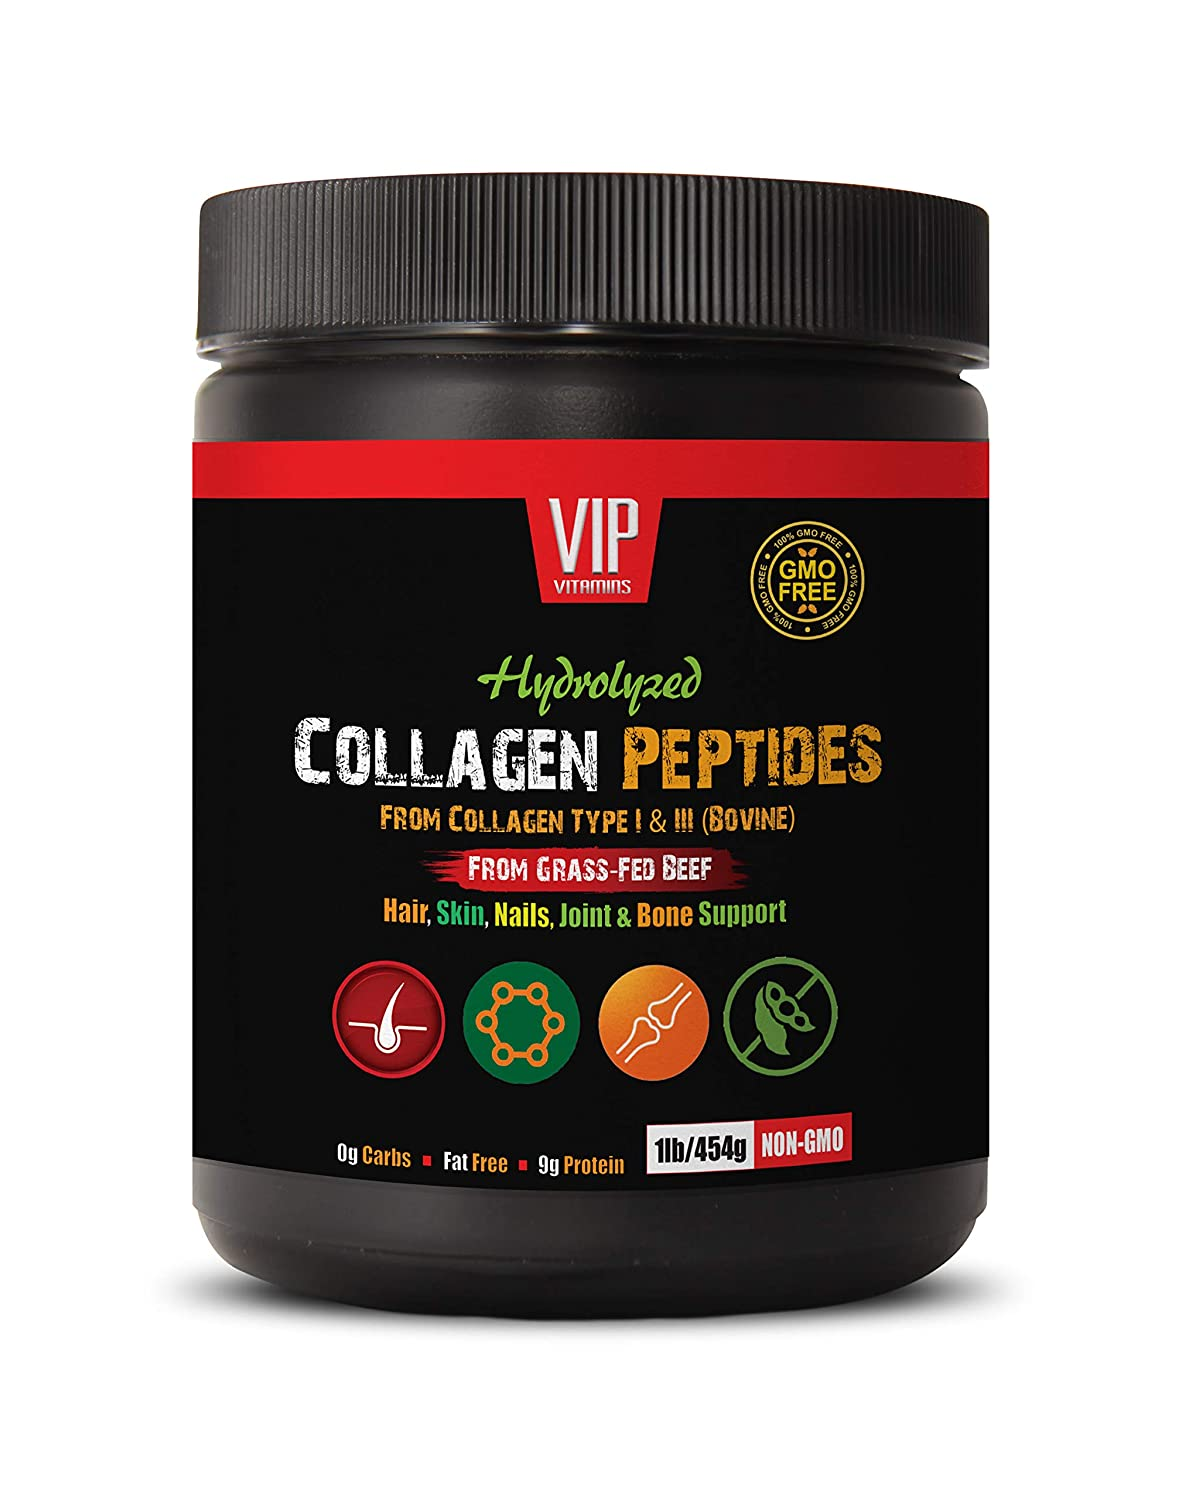 Hair Skin and Nails Vitamins Collagen - Collagen PEPTIDES HYDROLYZED - Hair, Skin, Nail, Joint and Bone Support - Collagen Supplements for Skin Elasticity - 1 Bottle 1 LB (454 Grams)